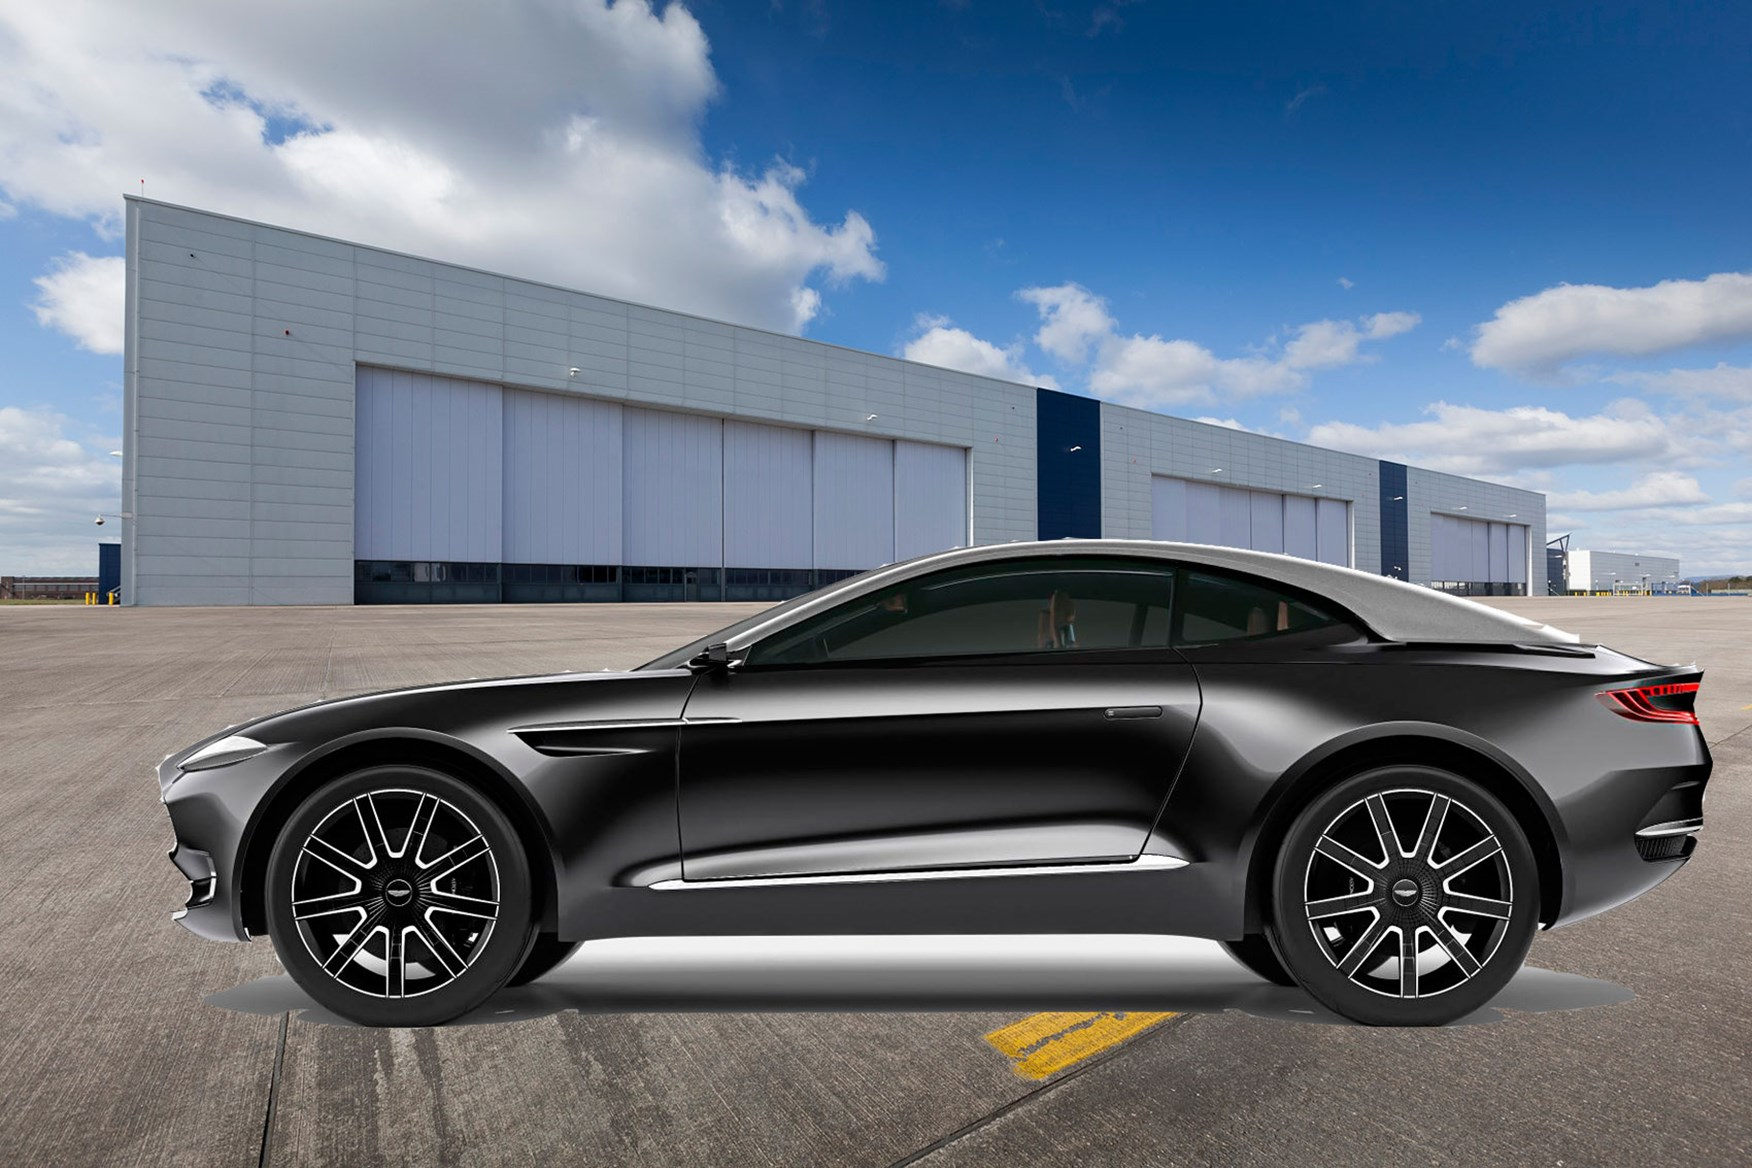 aston martin to build new factory in wales for 2020's dbx crossover